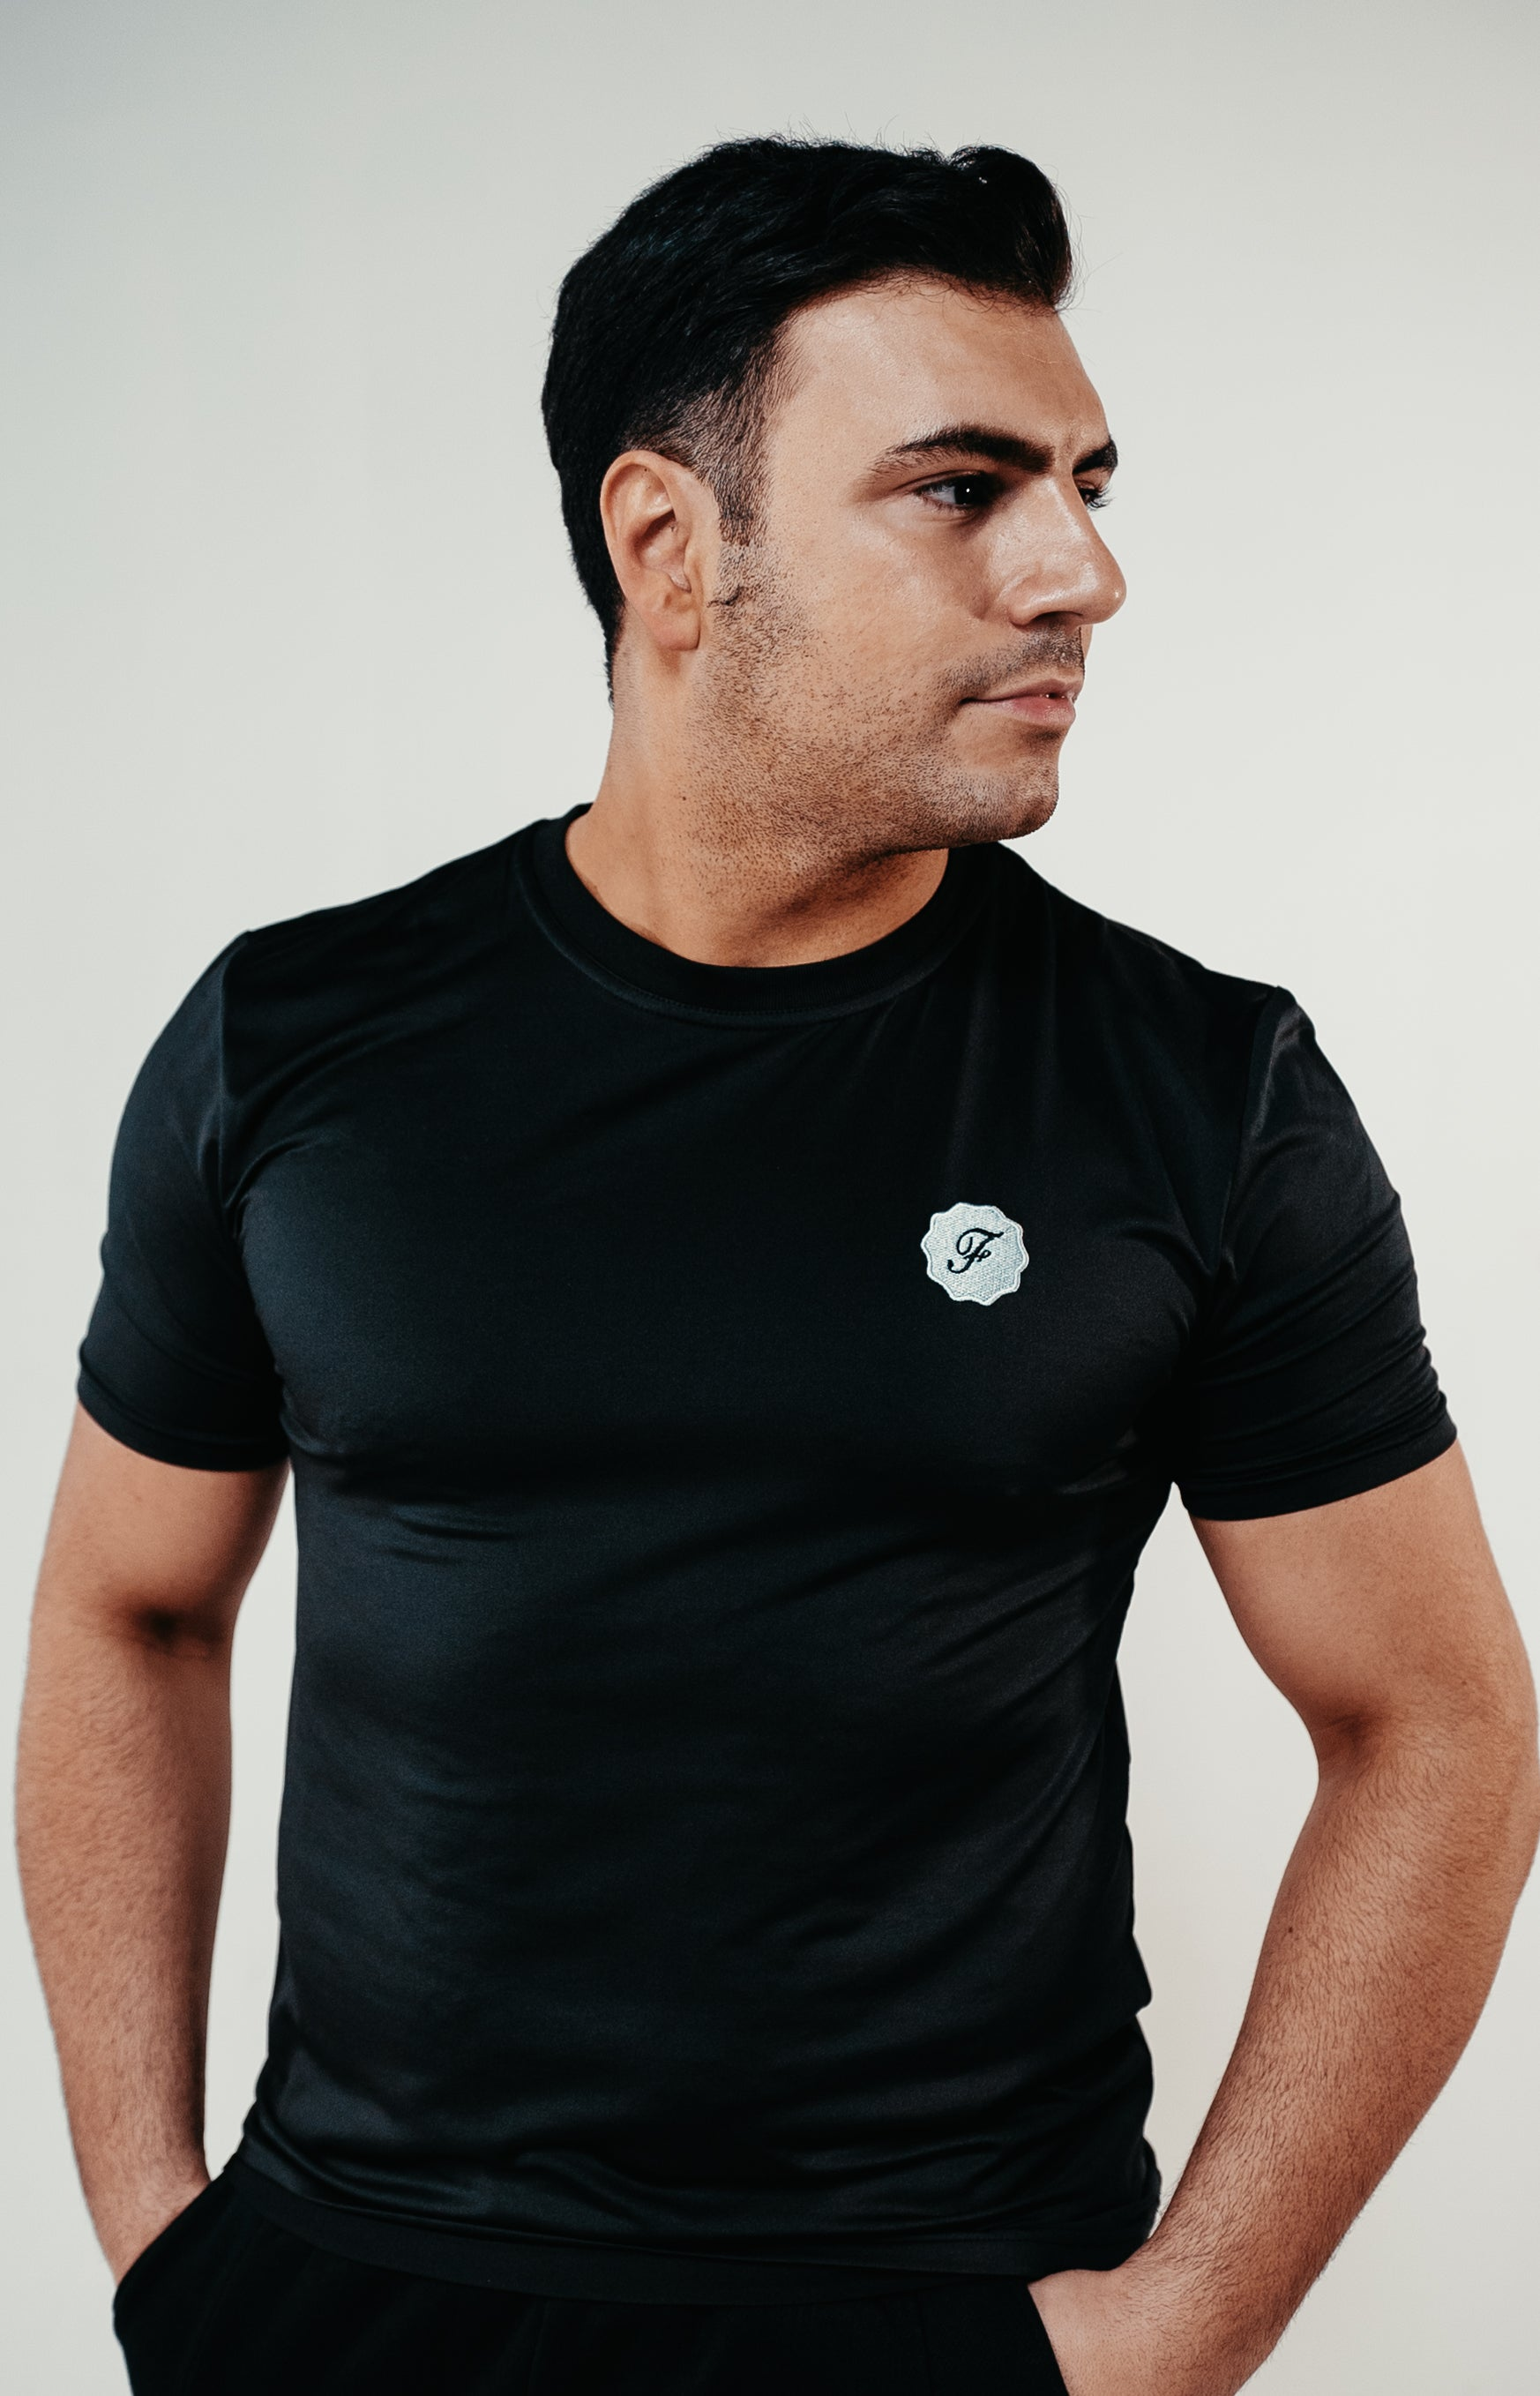 Fugati Black Signature T-shirt